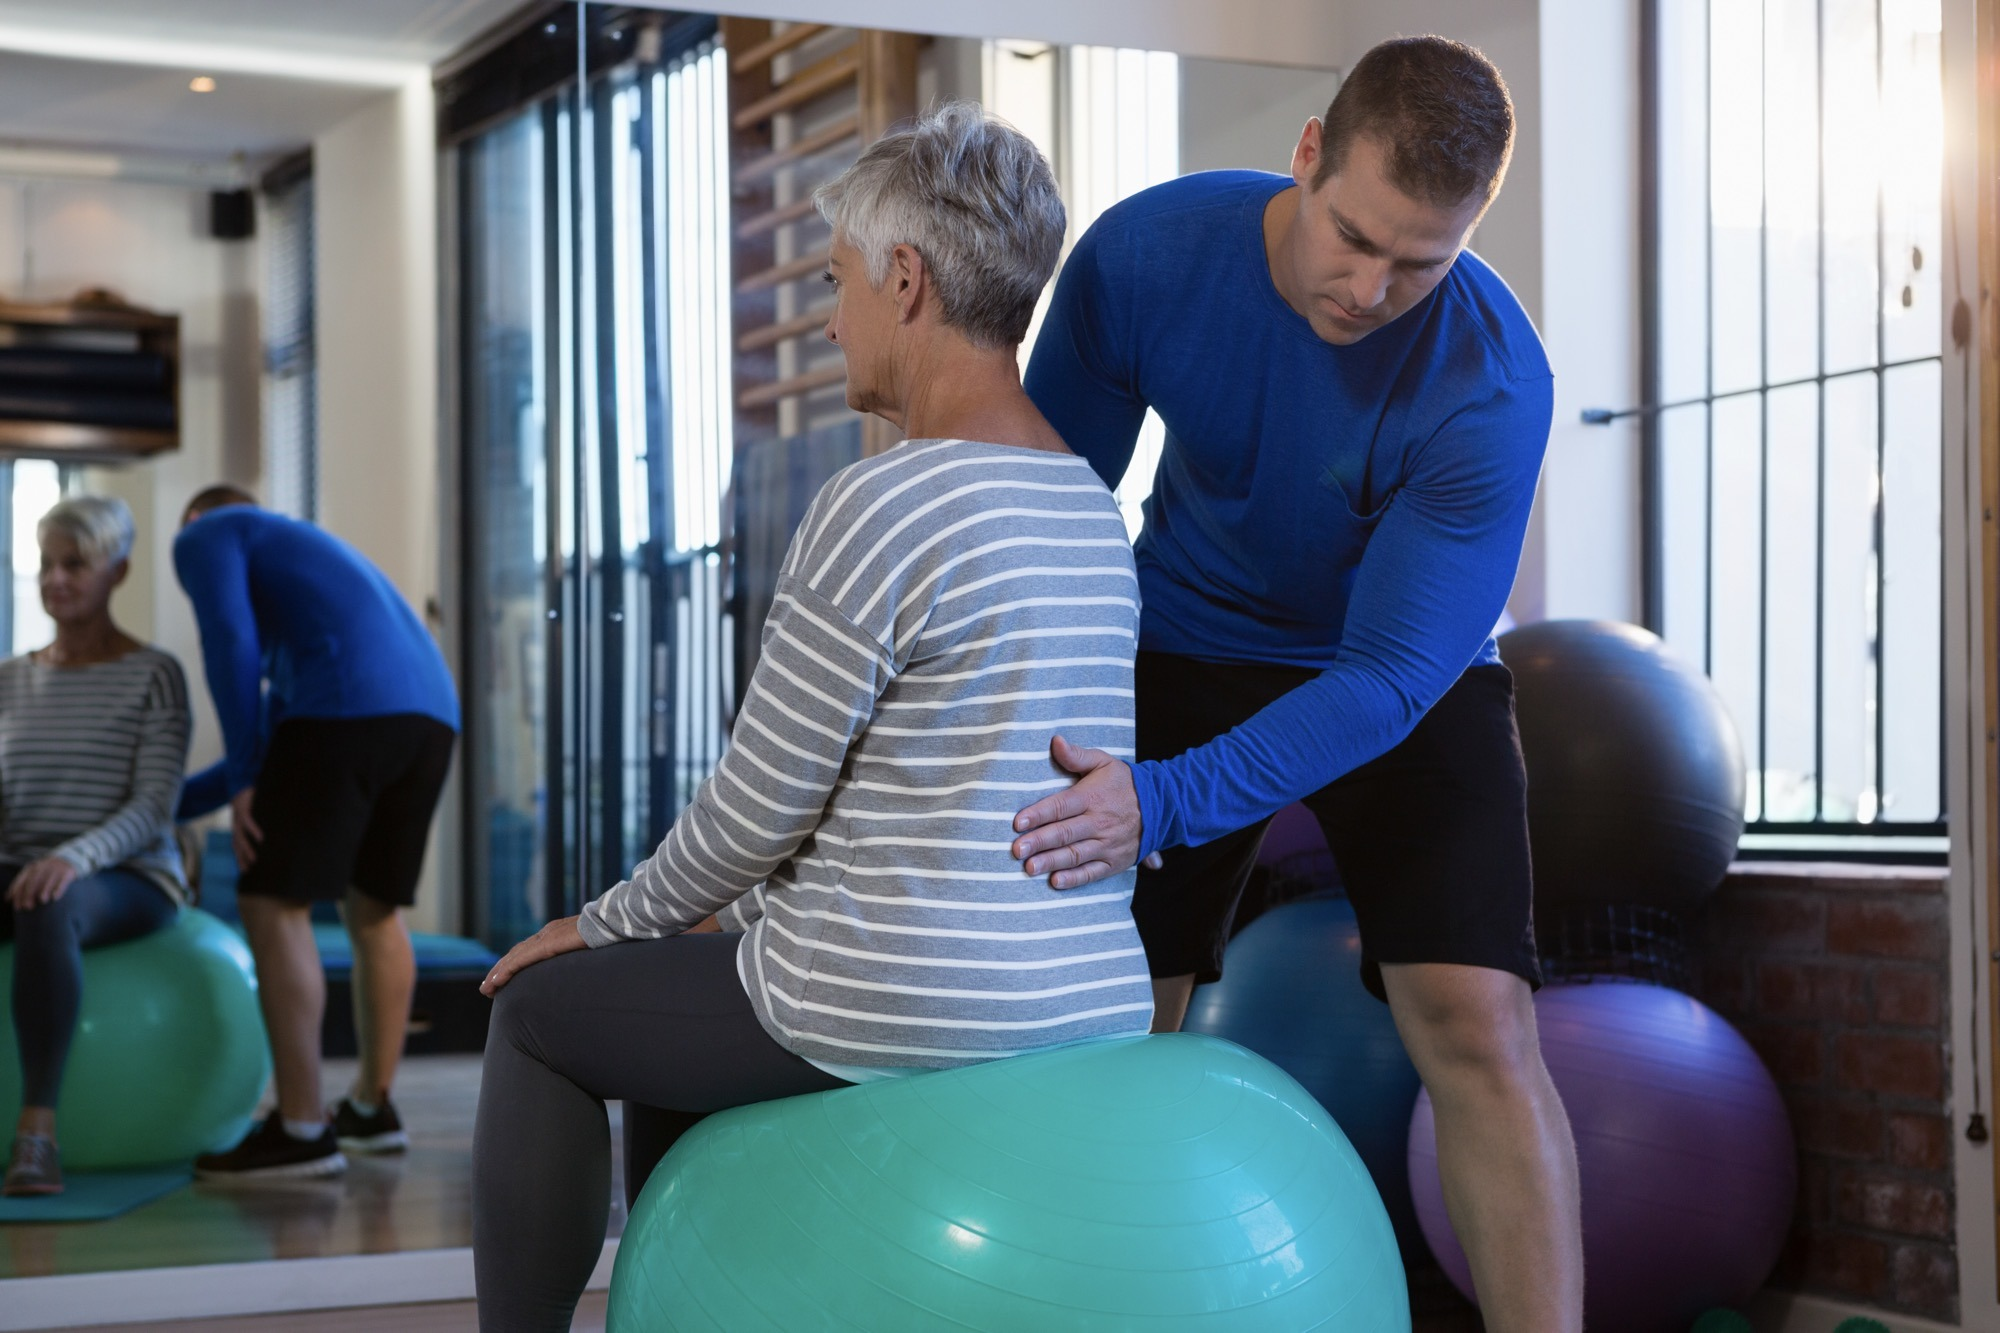 Physiotherapist assisting senior woman on exercise ball